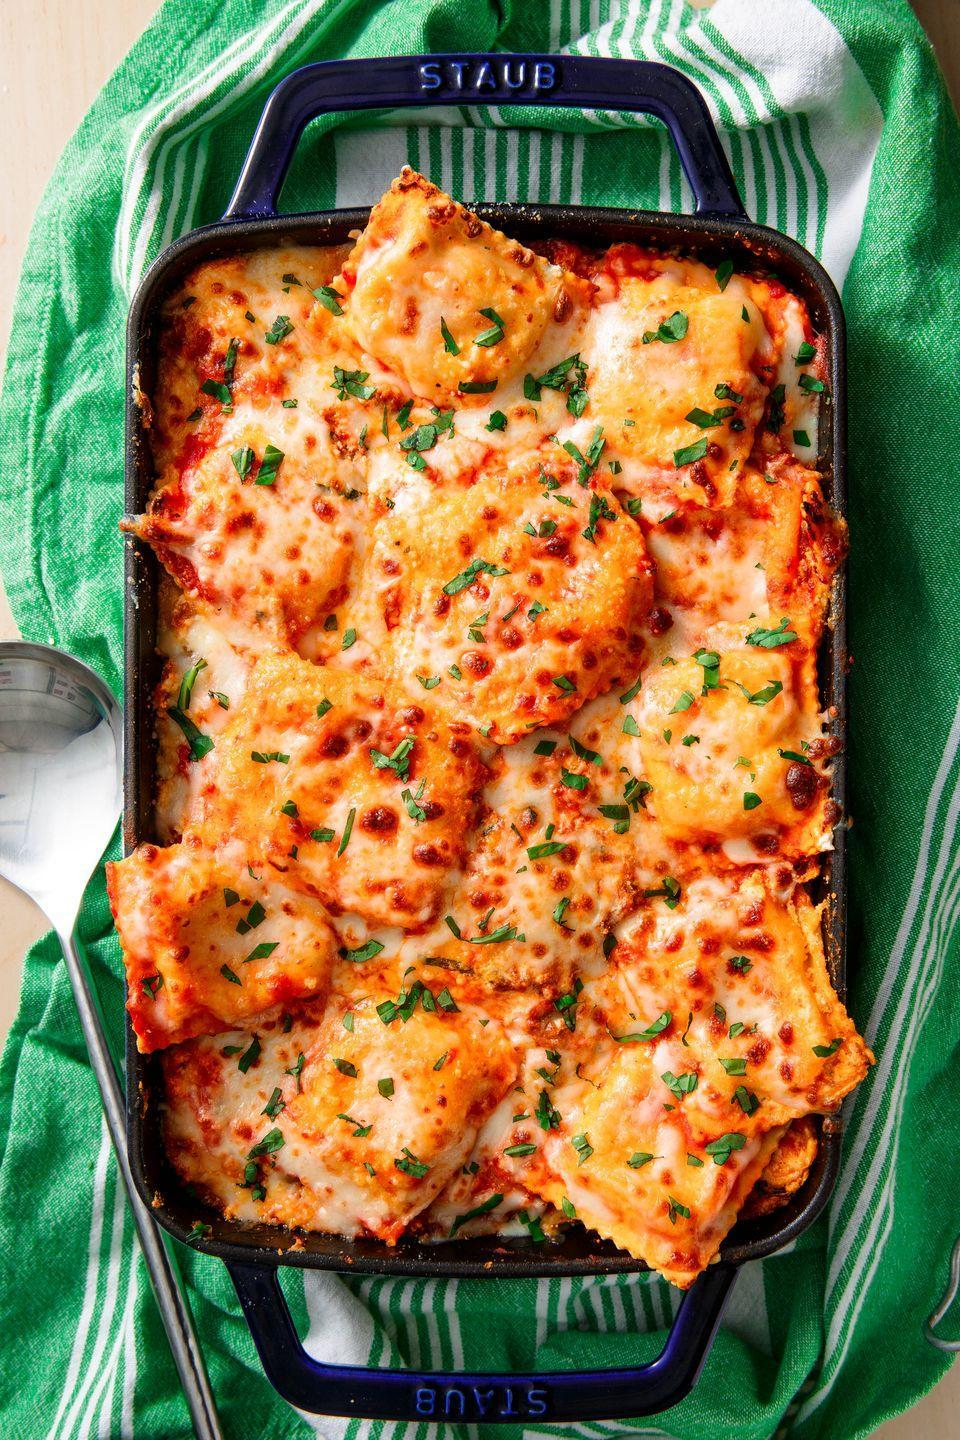 "<p>Italian night is better when your two favorite pastas combine.</p><p>Get the recipe from <a href=""https://www.delish.com/cooking/recipe-ideas/recipes/a52150/ravioli-lasagna-recipe/"" rel=""nofollow noopener"" target=""_blank"" data-ylk=""slk:Delish"" class=""link rapid-noclick-resp"">Delish</a>.</p>"